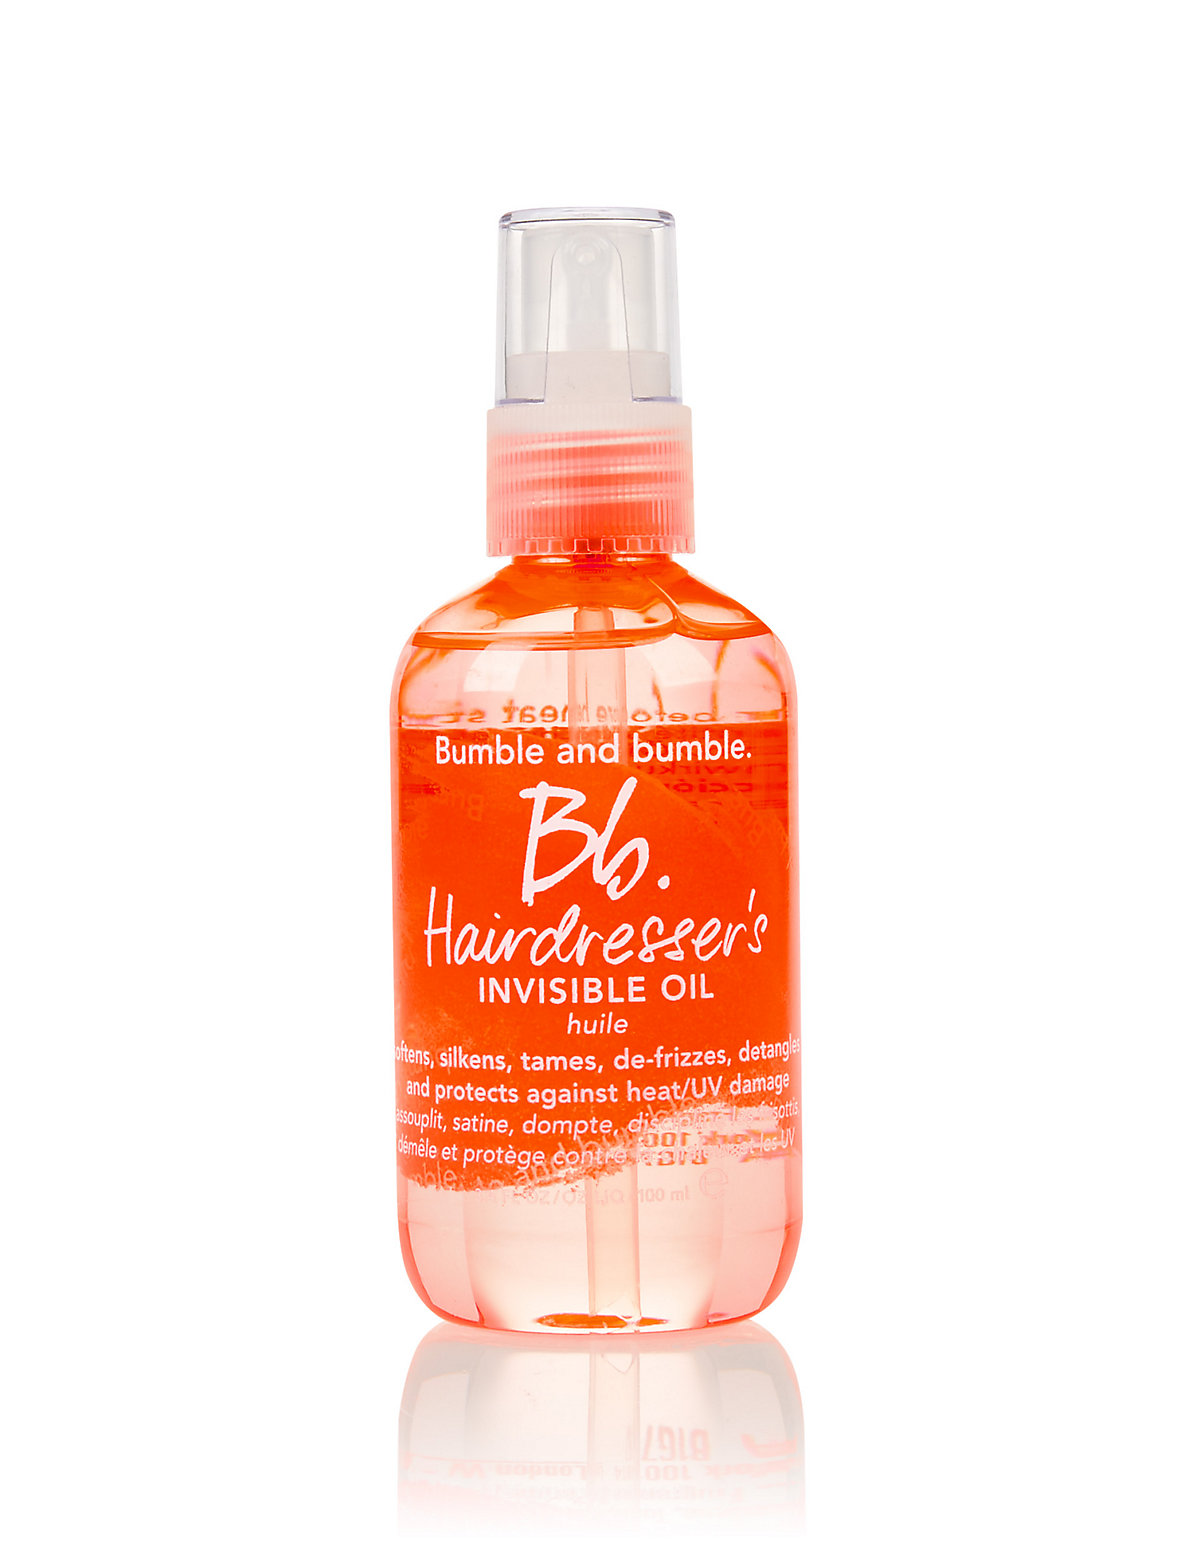 Bumble and bumble Hairdresser's Invisible Oil 100ml